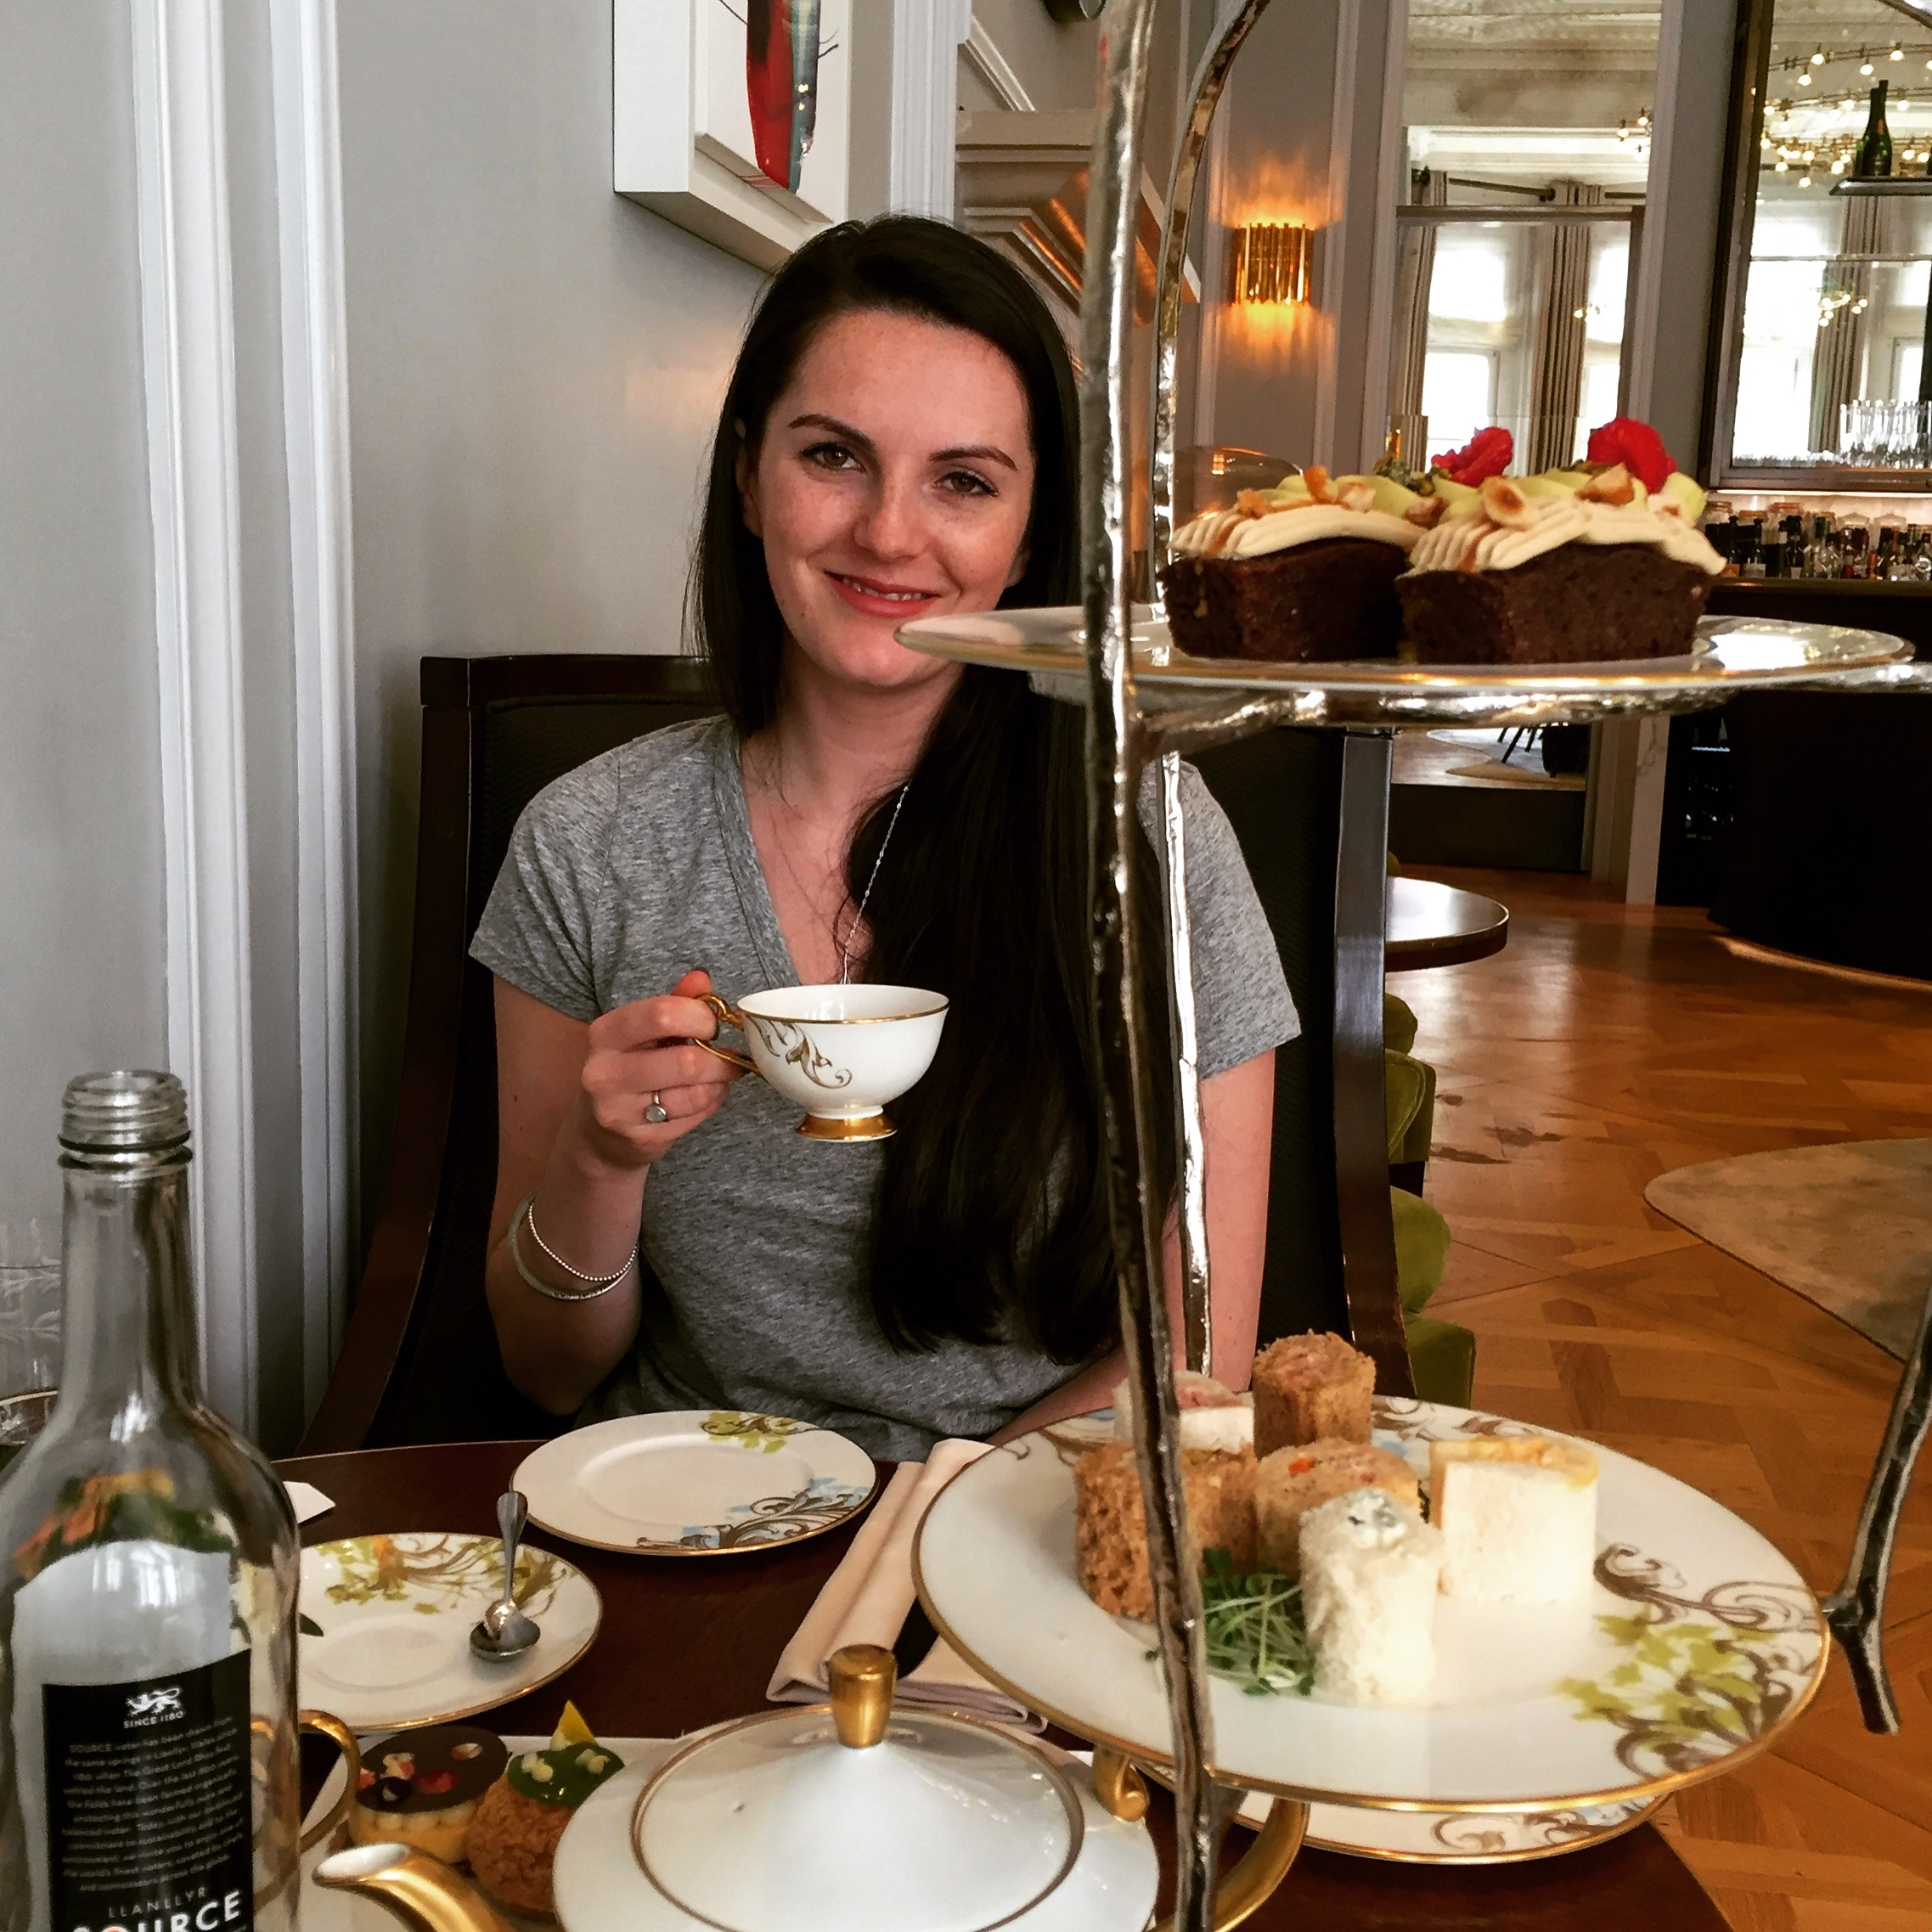 Trying to look ladylike with my dainty teacup!